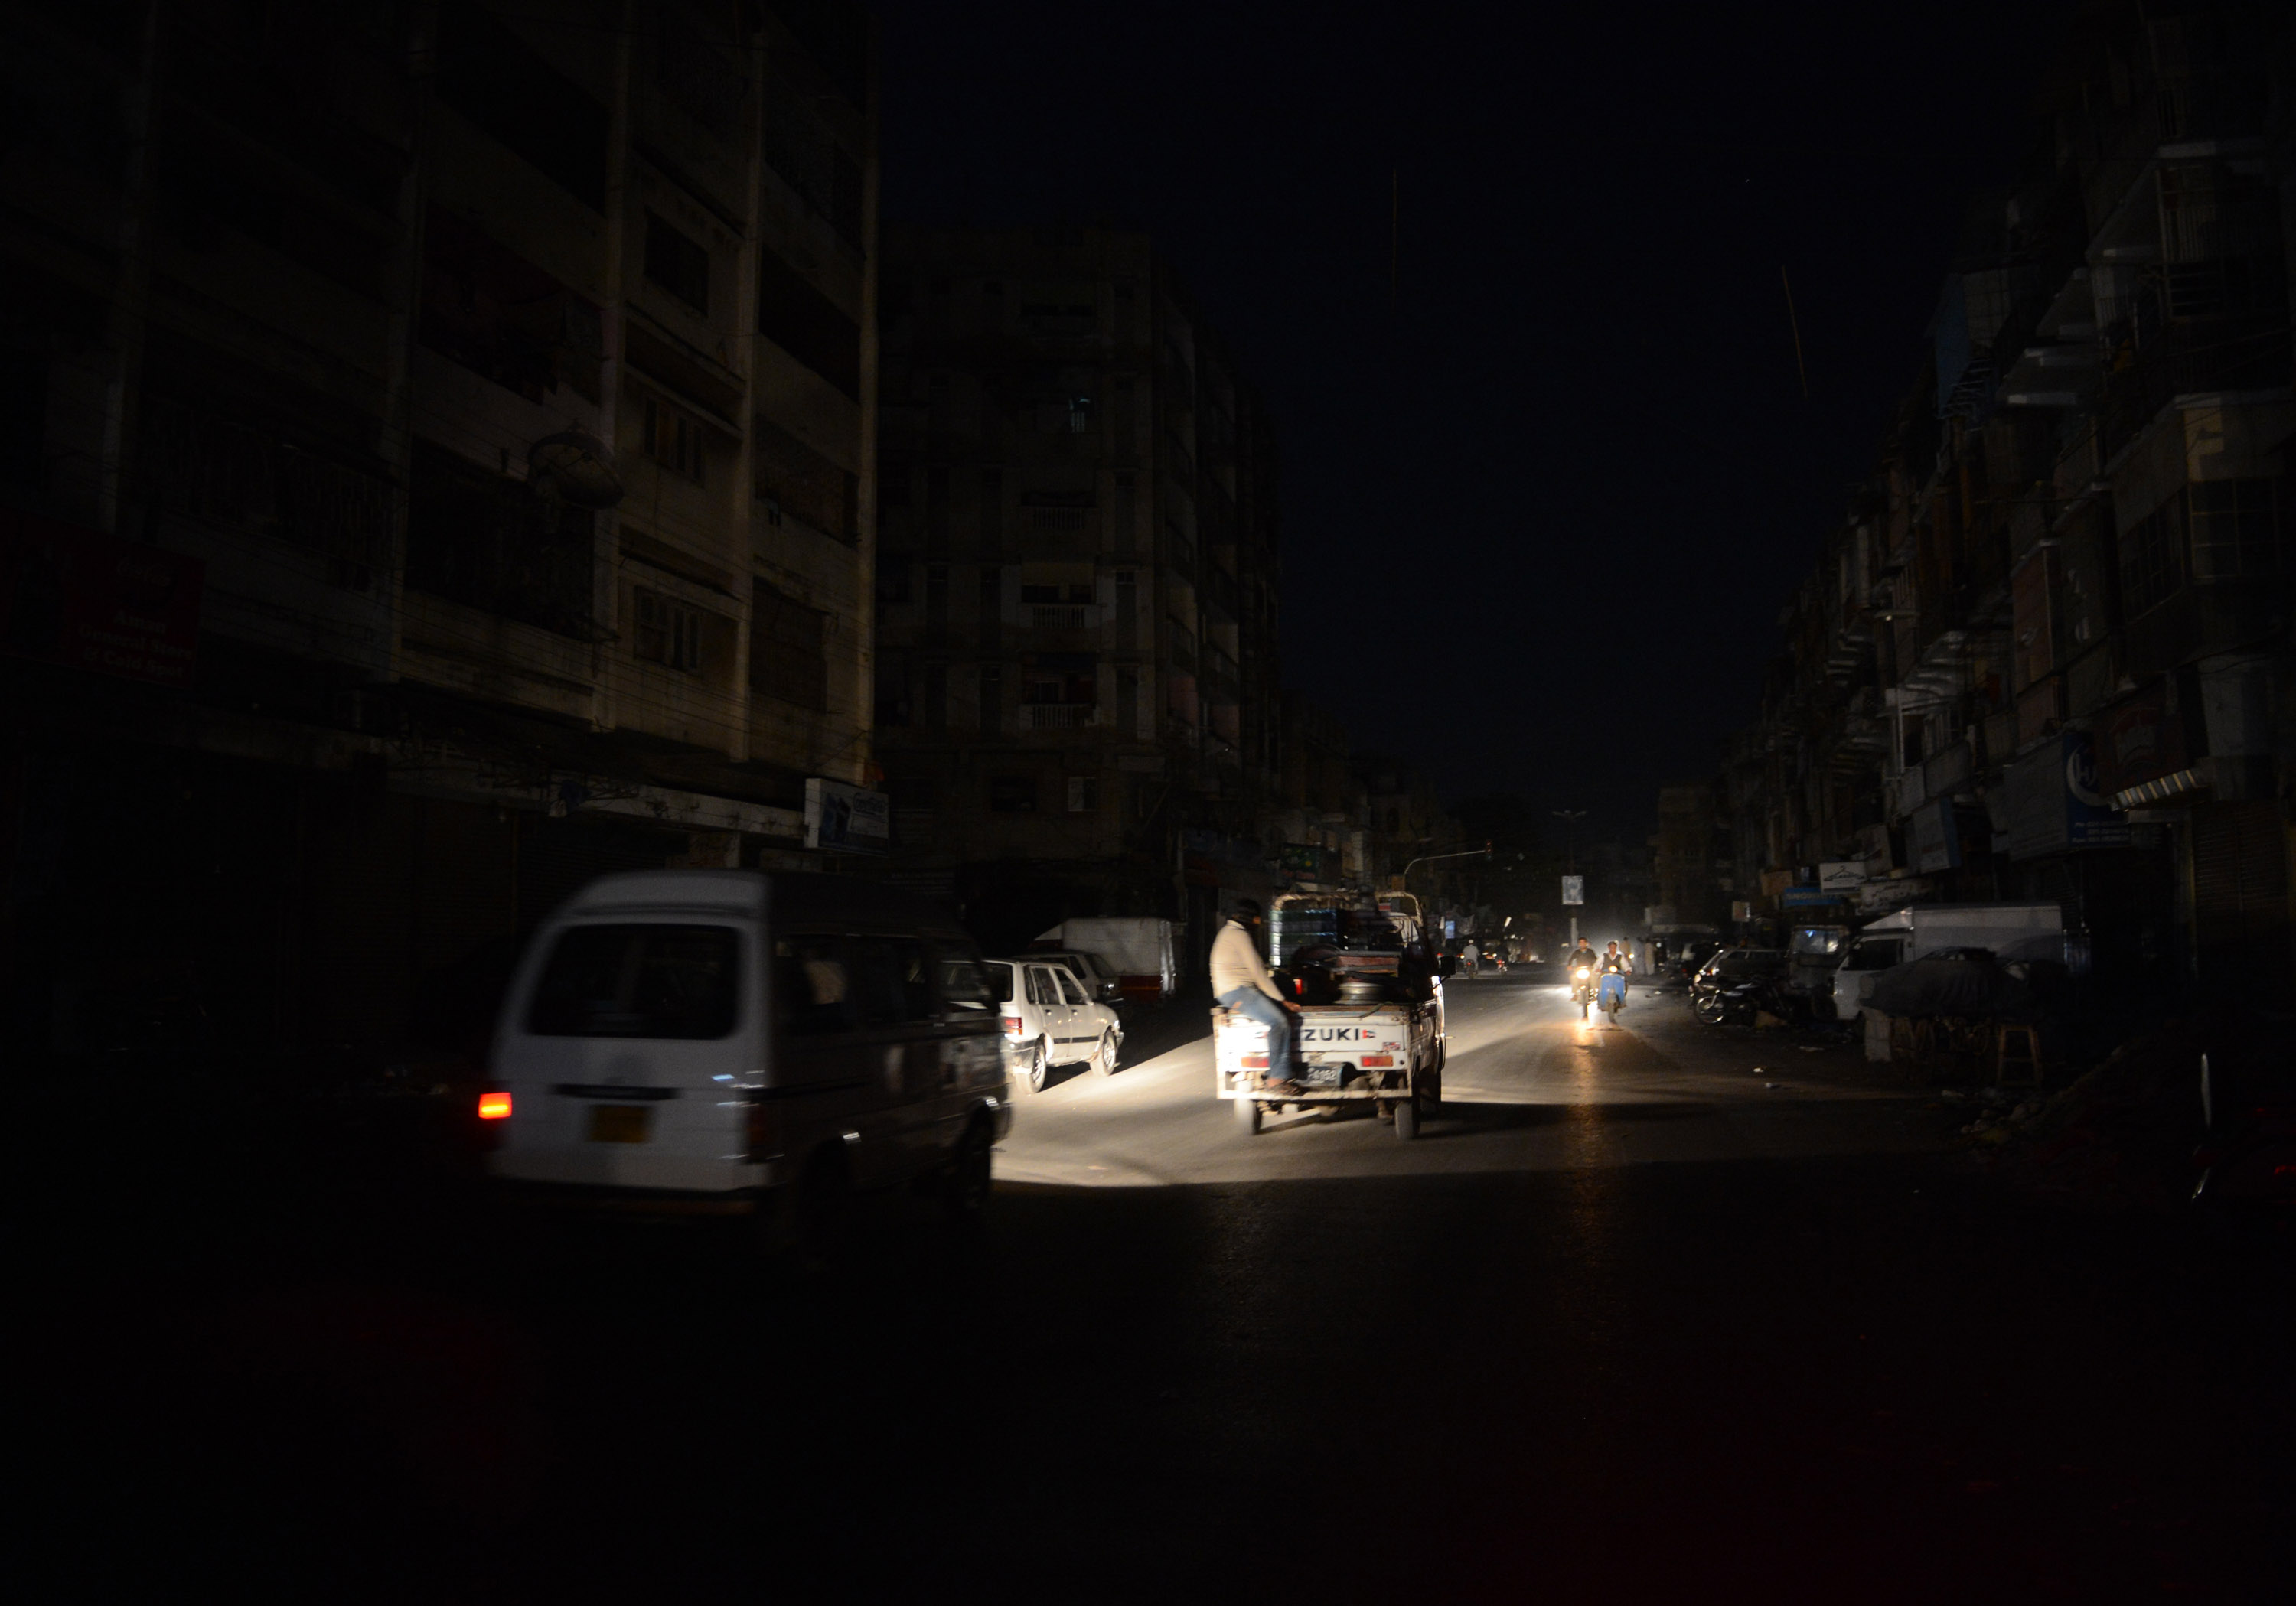 This picture taken on February 24, 2013 shows Pakistani commuters driving on a street in a residential area during a nationwide power blackout in Karachi.  Pakistan was hit by a nationwide blackout for more than two hours after the breakdown of a major plant caused power stations to stop working across the country, officials said on February 25.  AFP PHOTO/Asif HASSAN